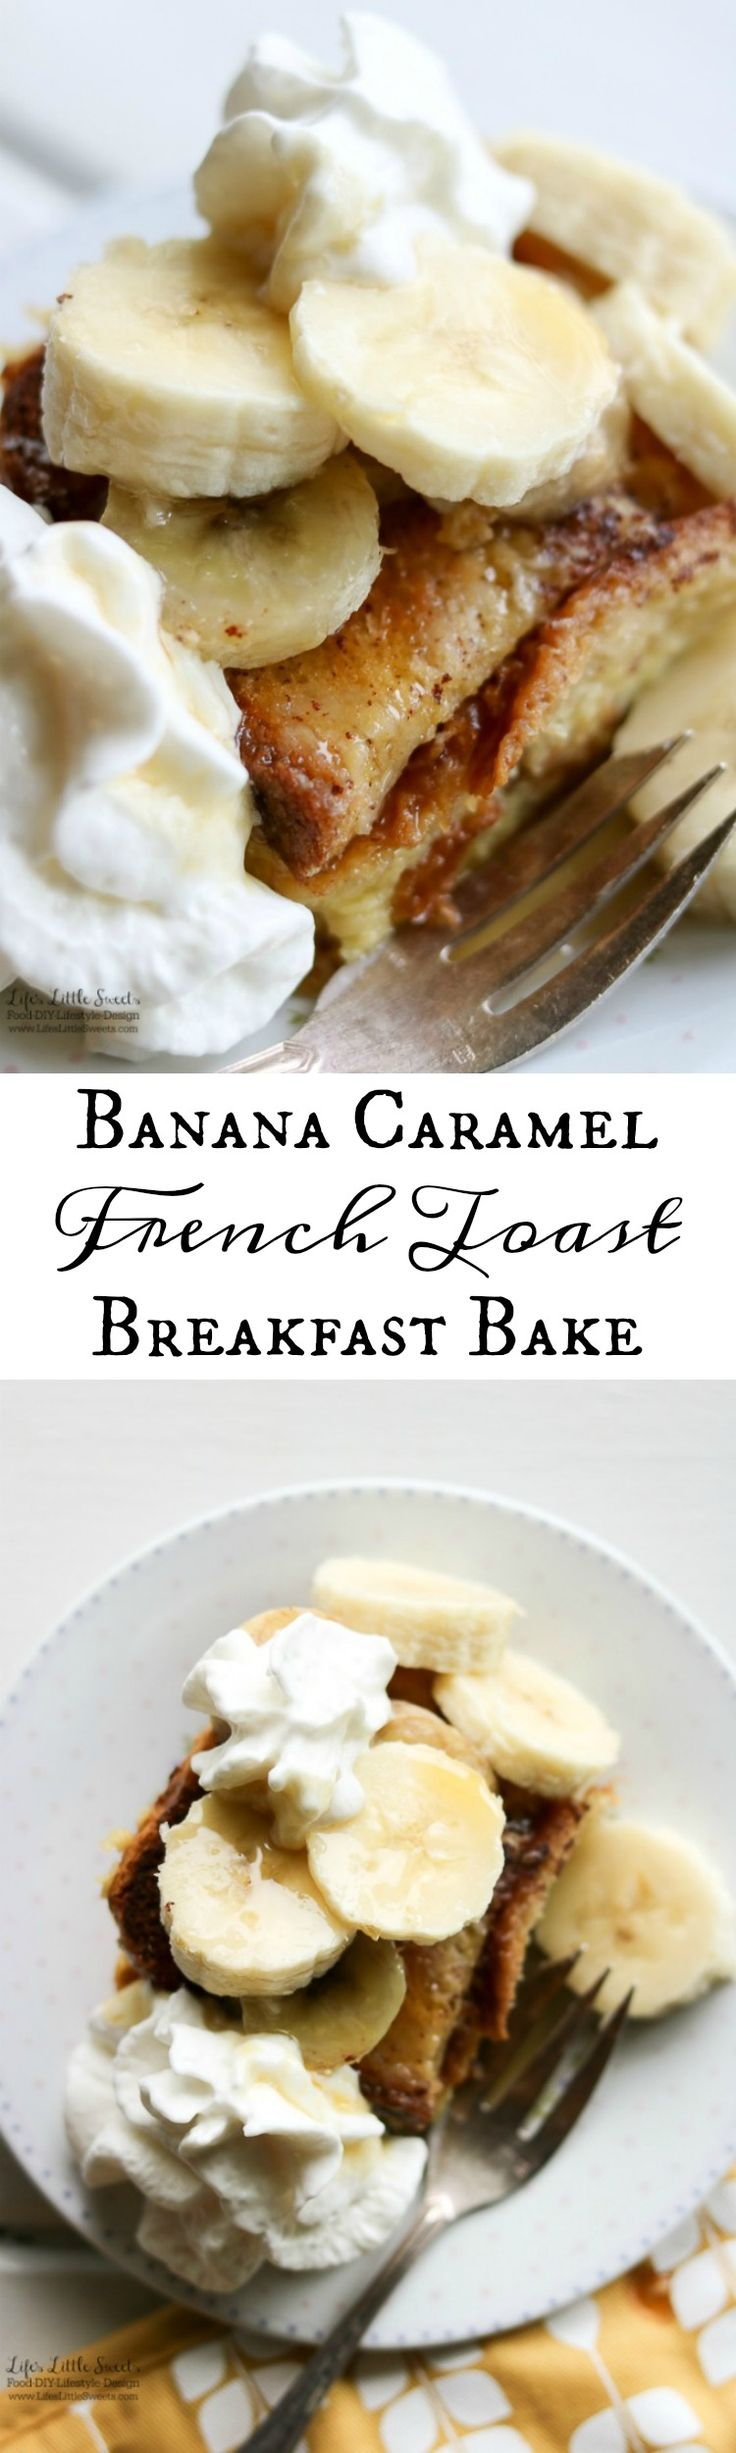 Banana Caramel French Toast Breakfast Bake is great one-pan dish for any breakfast or brunch gathering. It's a classic French toast bake with bananas as a twist and has sweet caramel flavor infused throughout. (dairy-free option) #ad #SilkandSimplyPureCreamers #CollectiveBias @walmart